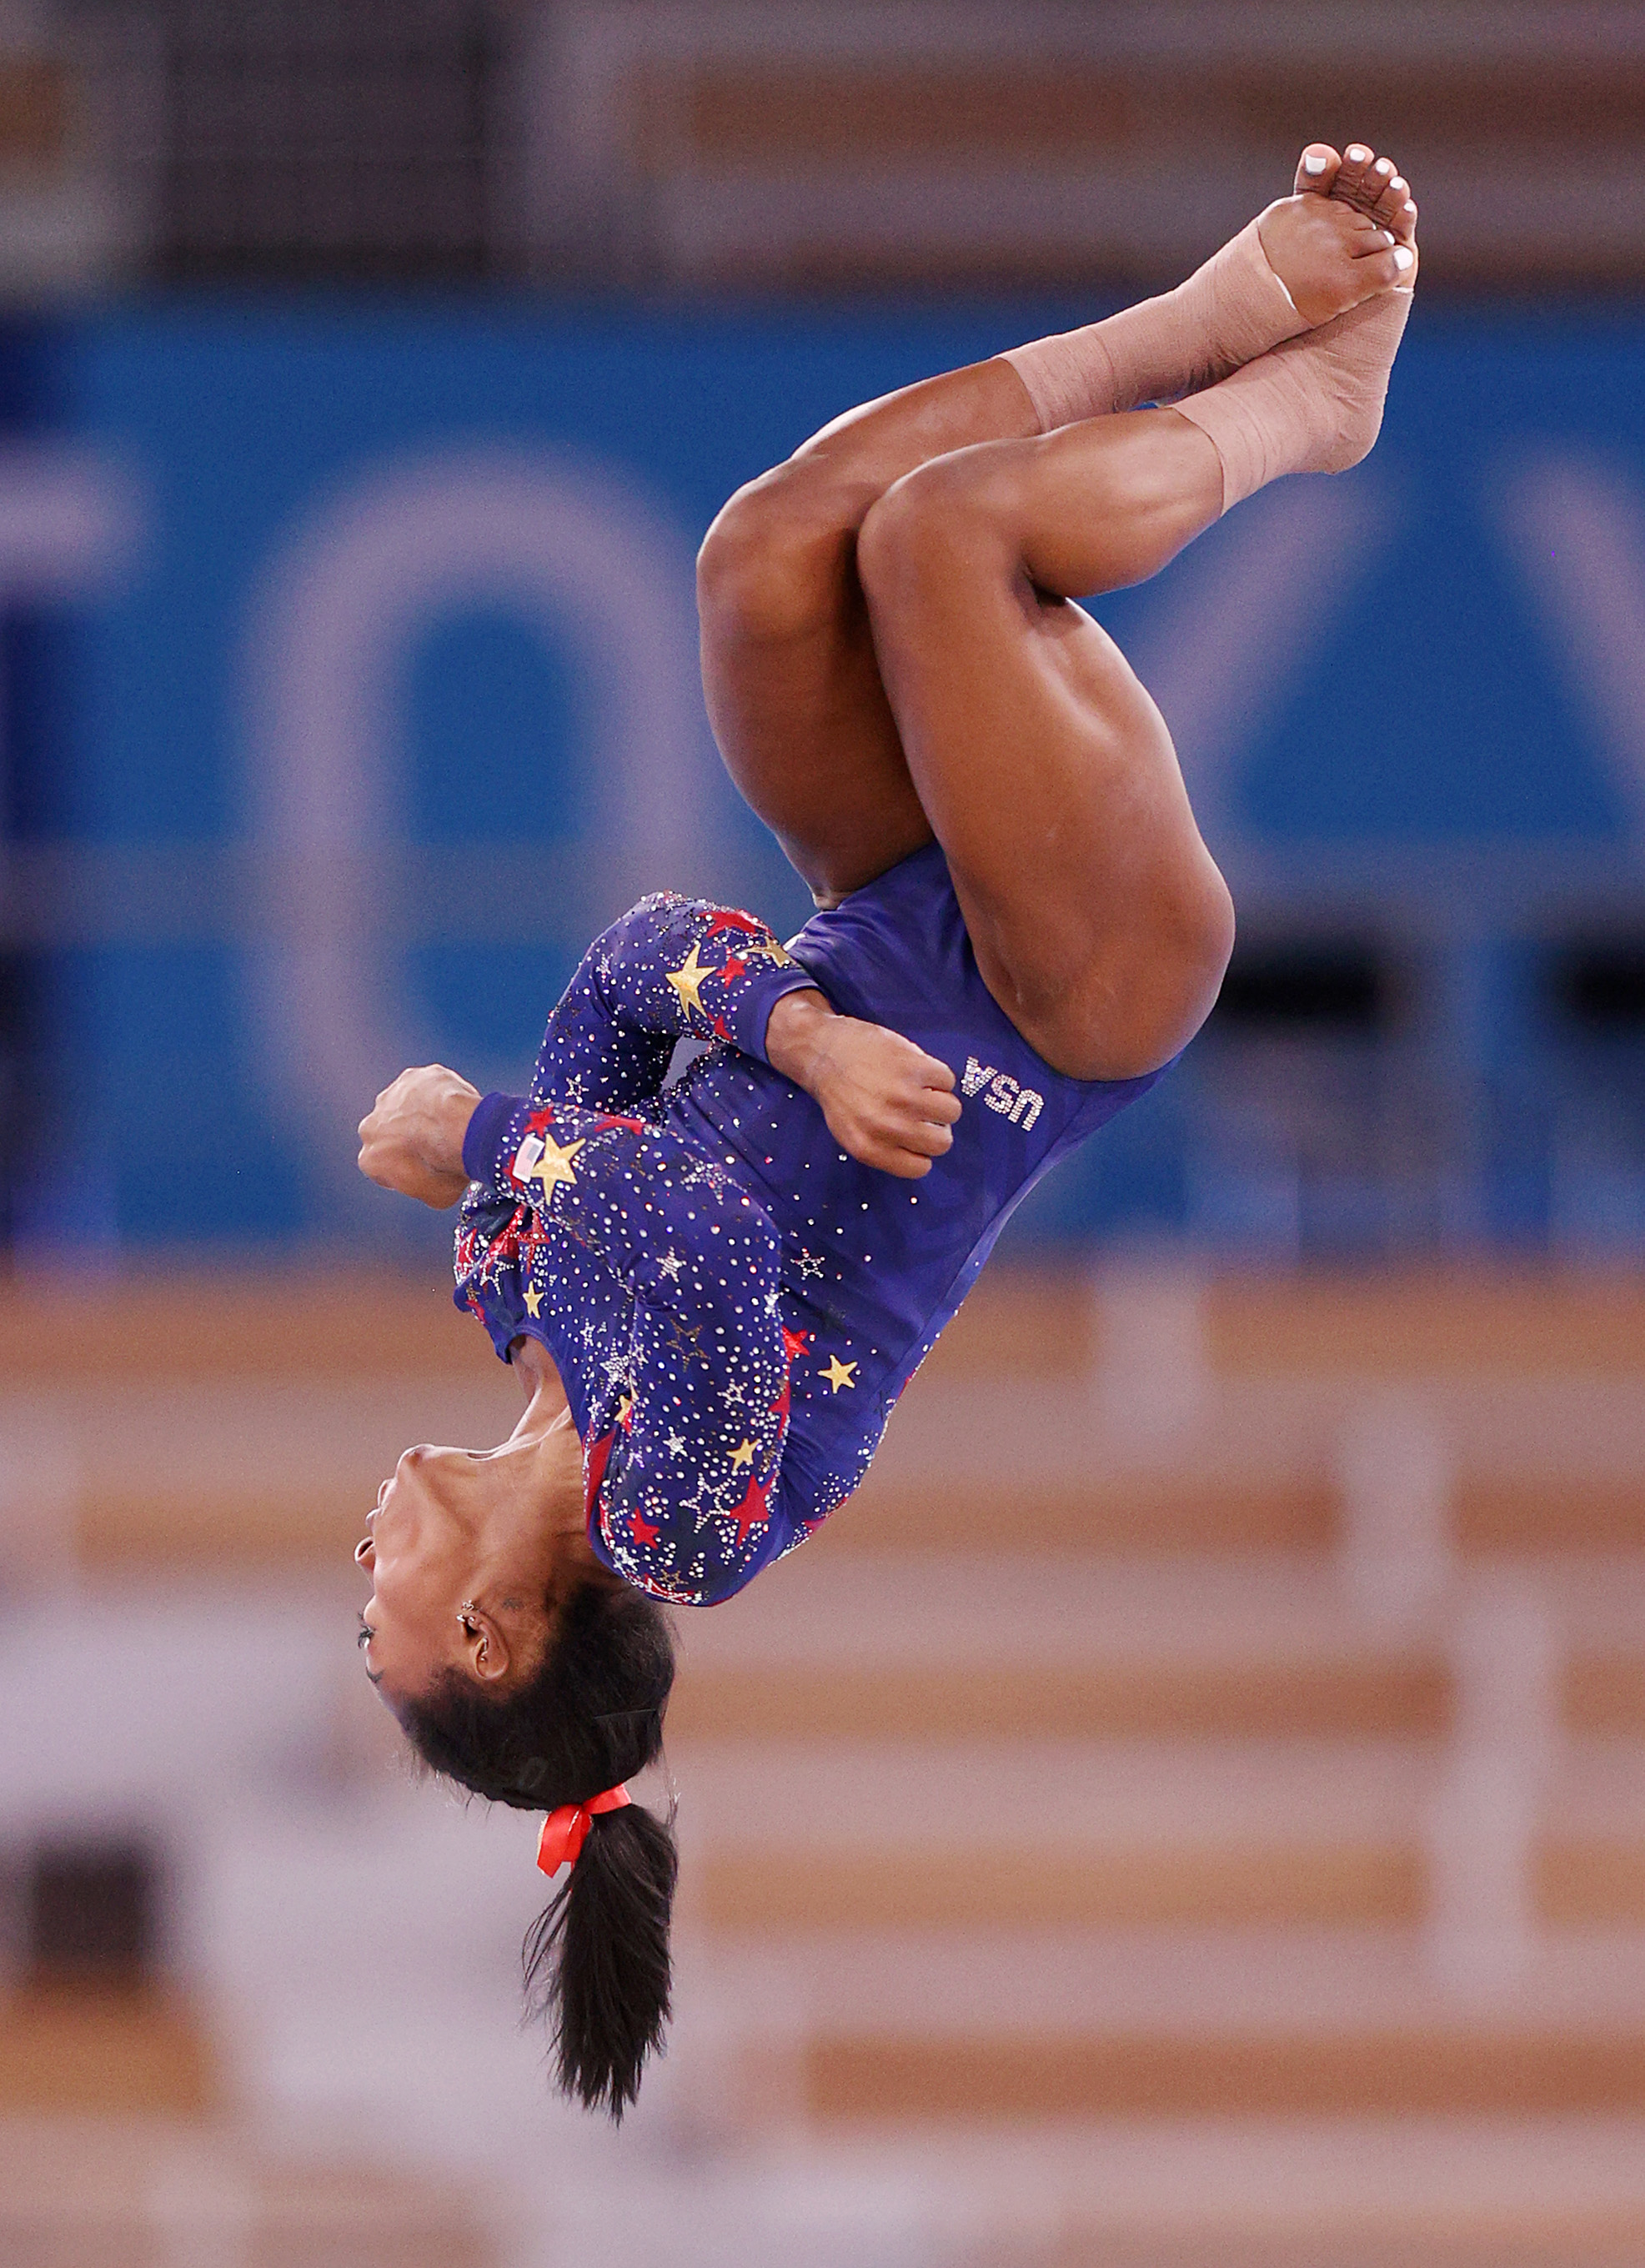 American gymnast Simone Biles competes at the Tokyo 2020 Olympic Games on July 25, 2021